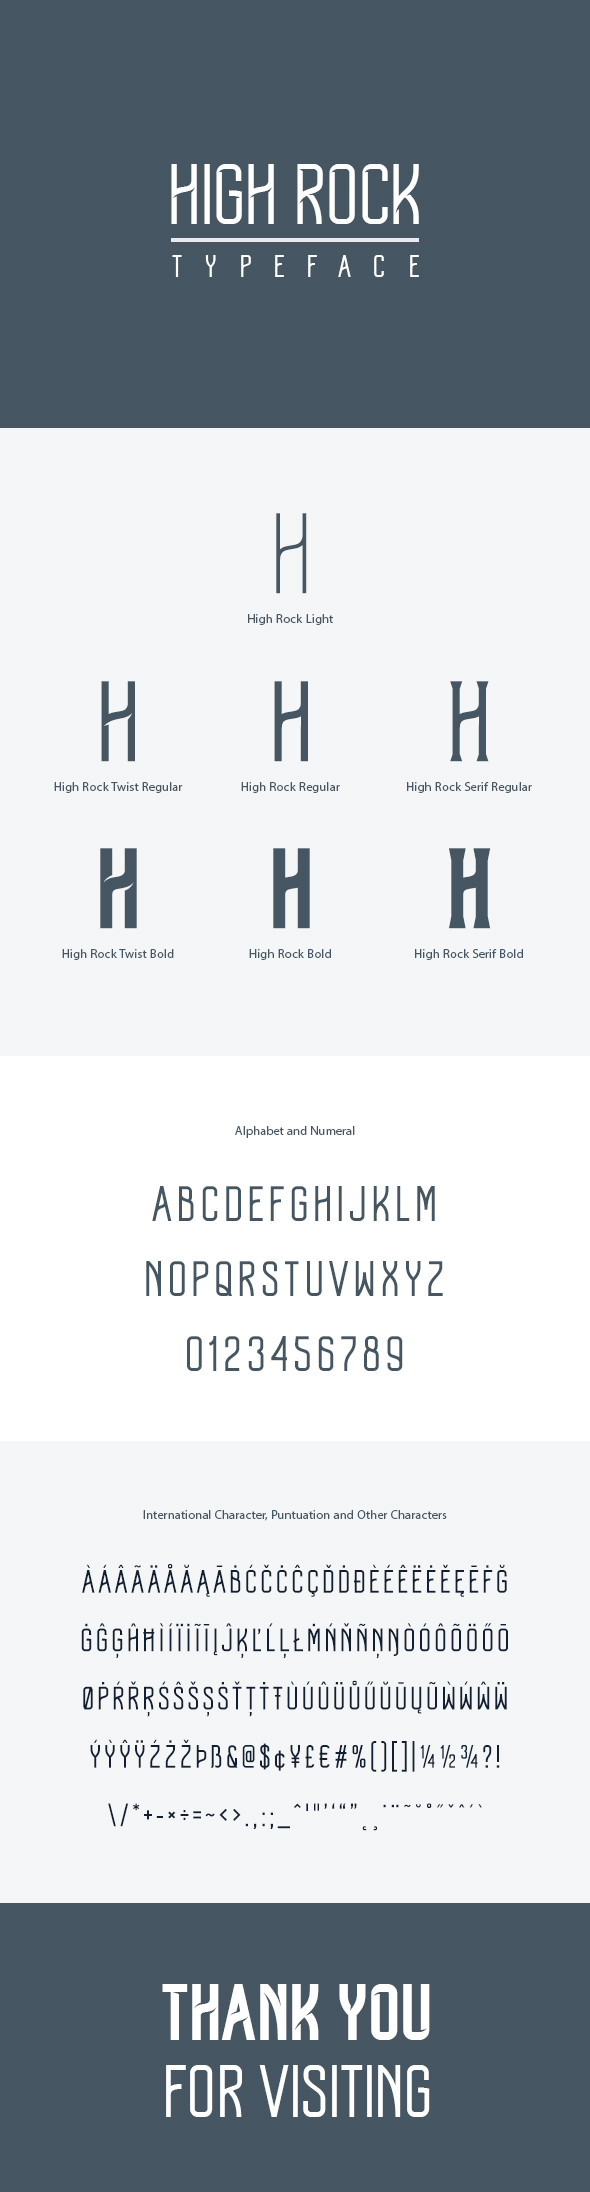 High Rock Typeface - Miscellaneous Decorative